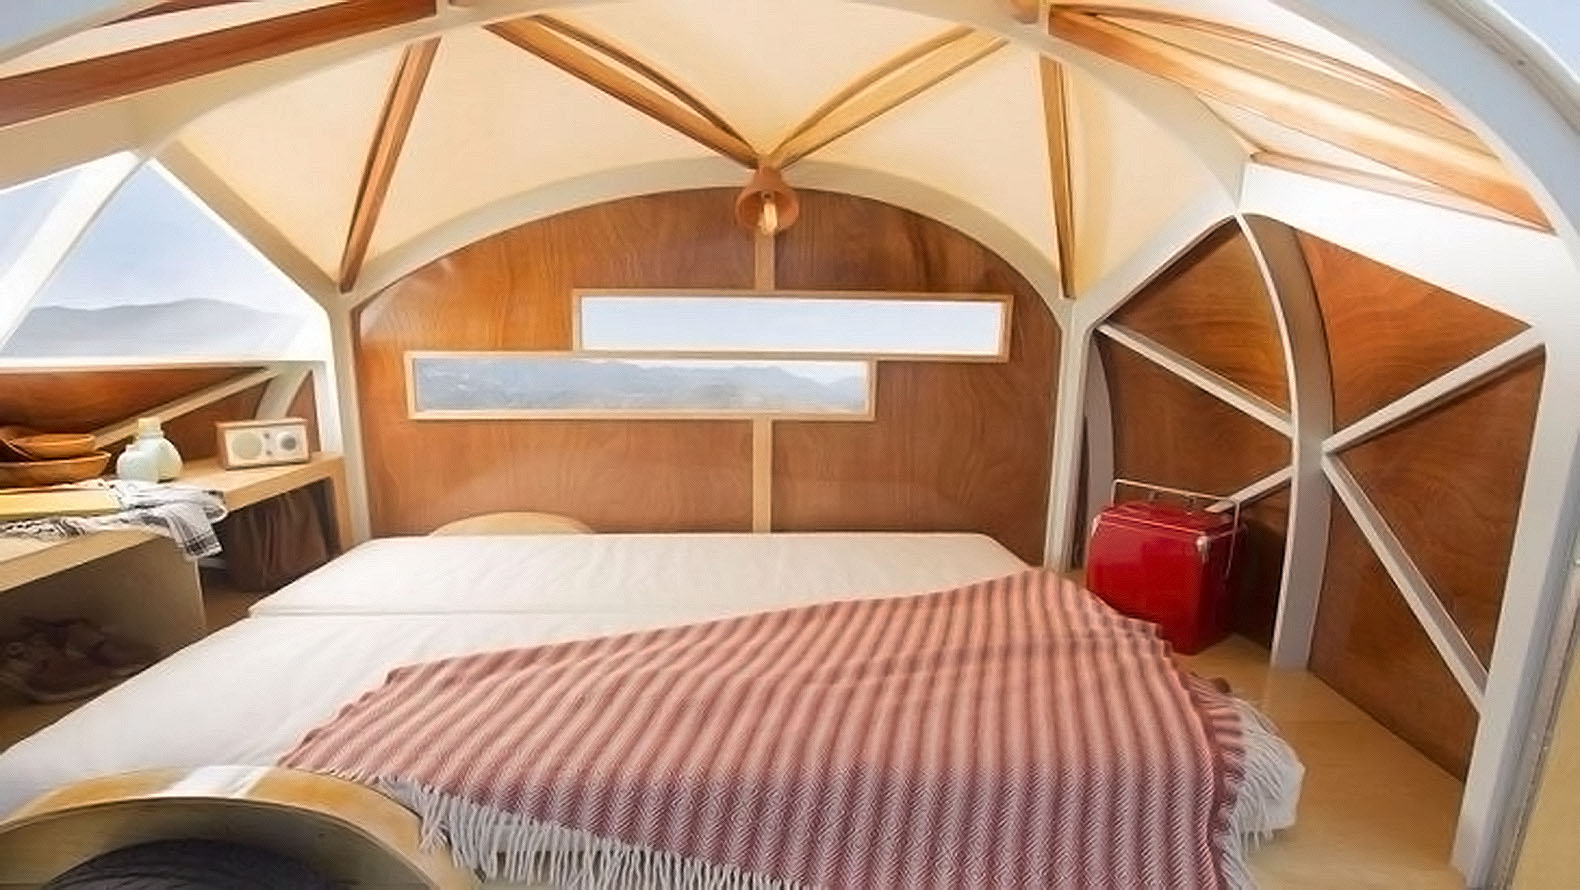 The Life Pod is a $15,000 dome-shaped dream home on wheels